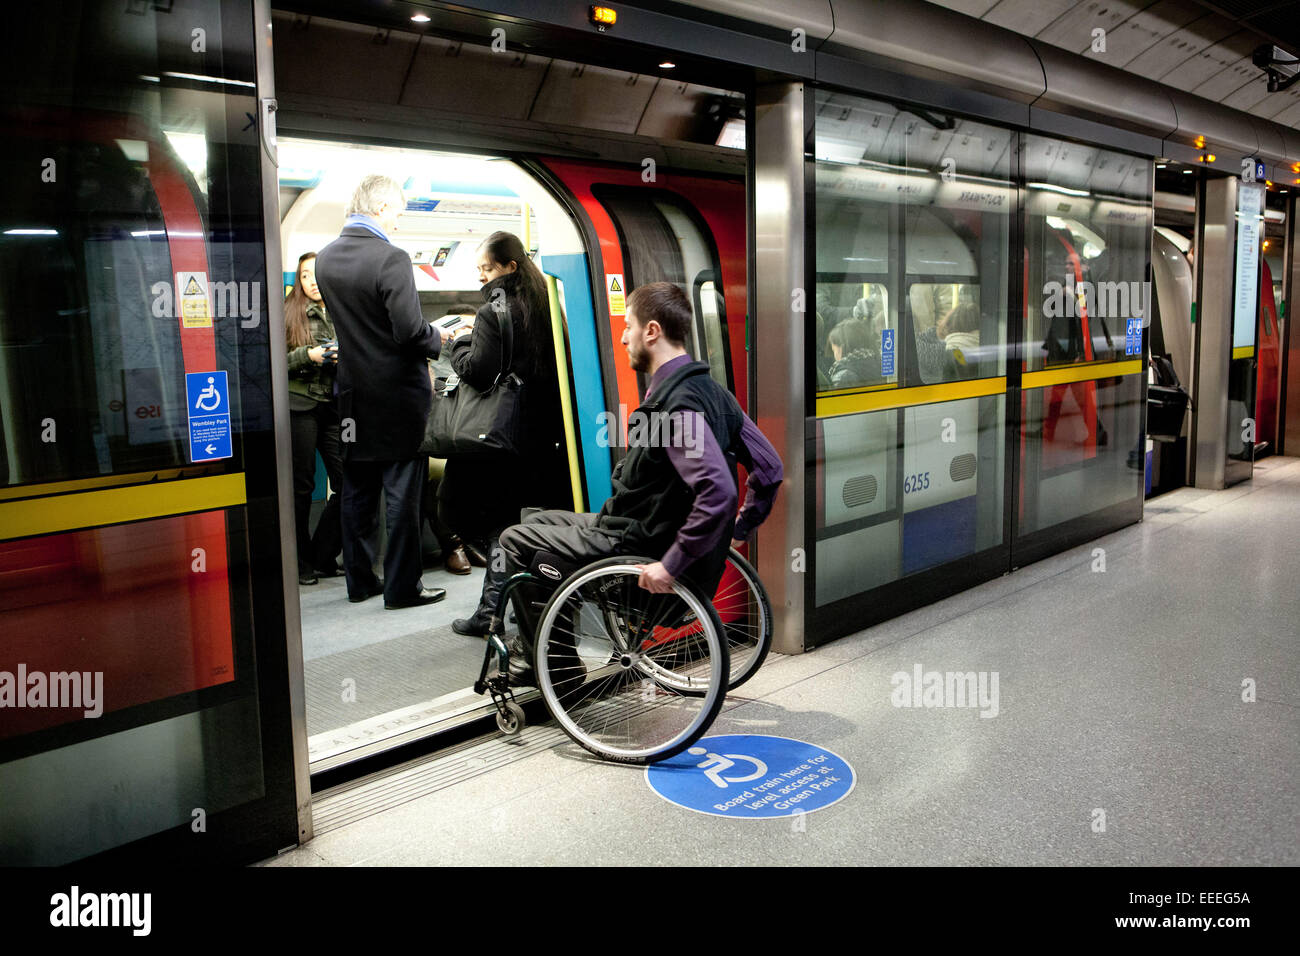 Wheelchair user boarding a London Underground train - Stock Image